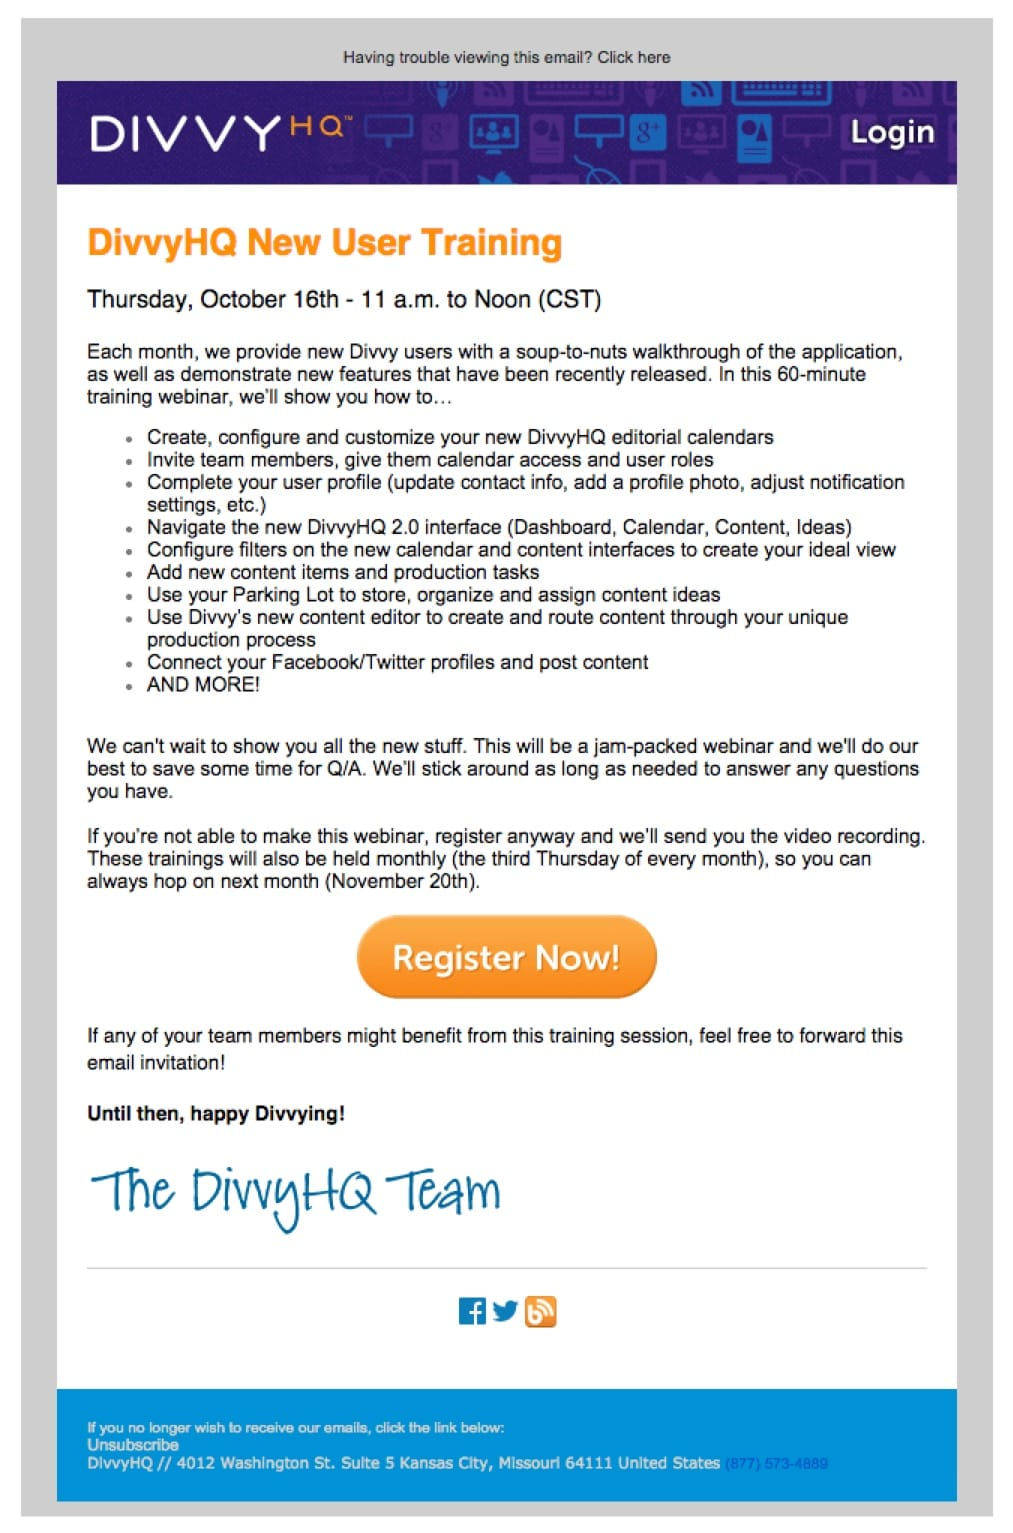 promotional email example divvy (invitation email)